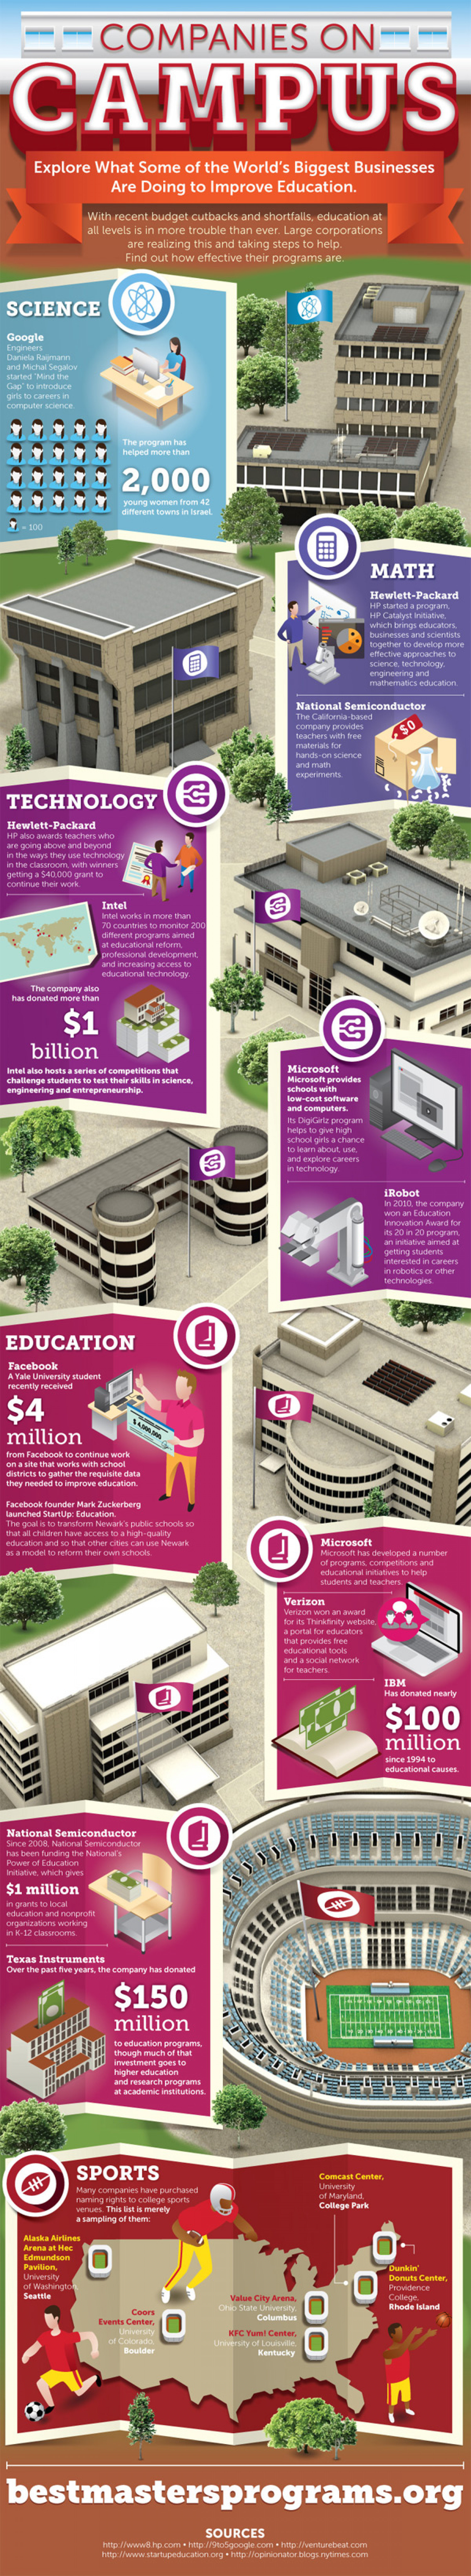 Companies on Campus Infographic